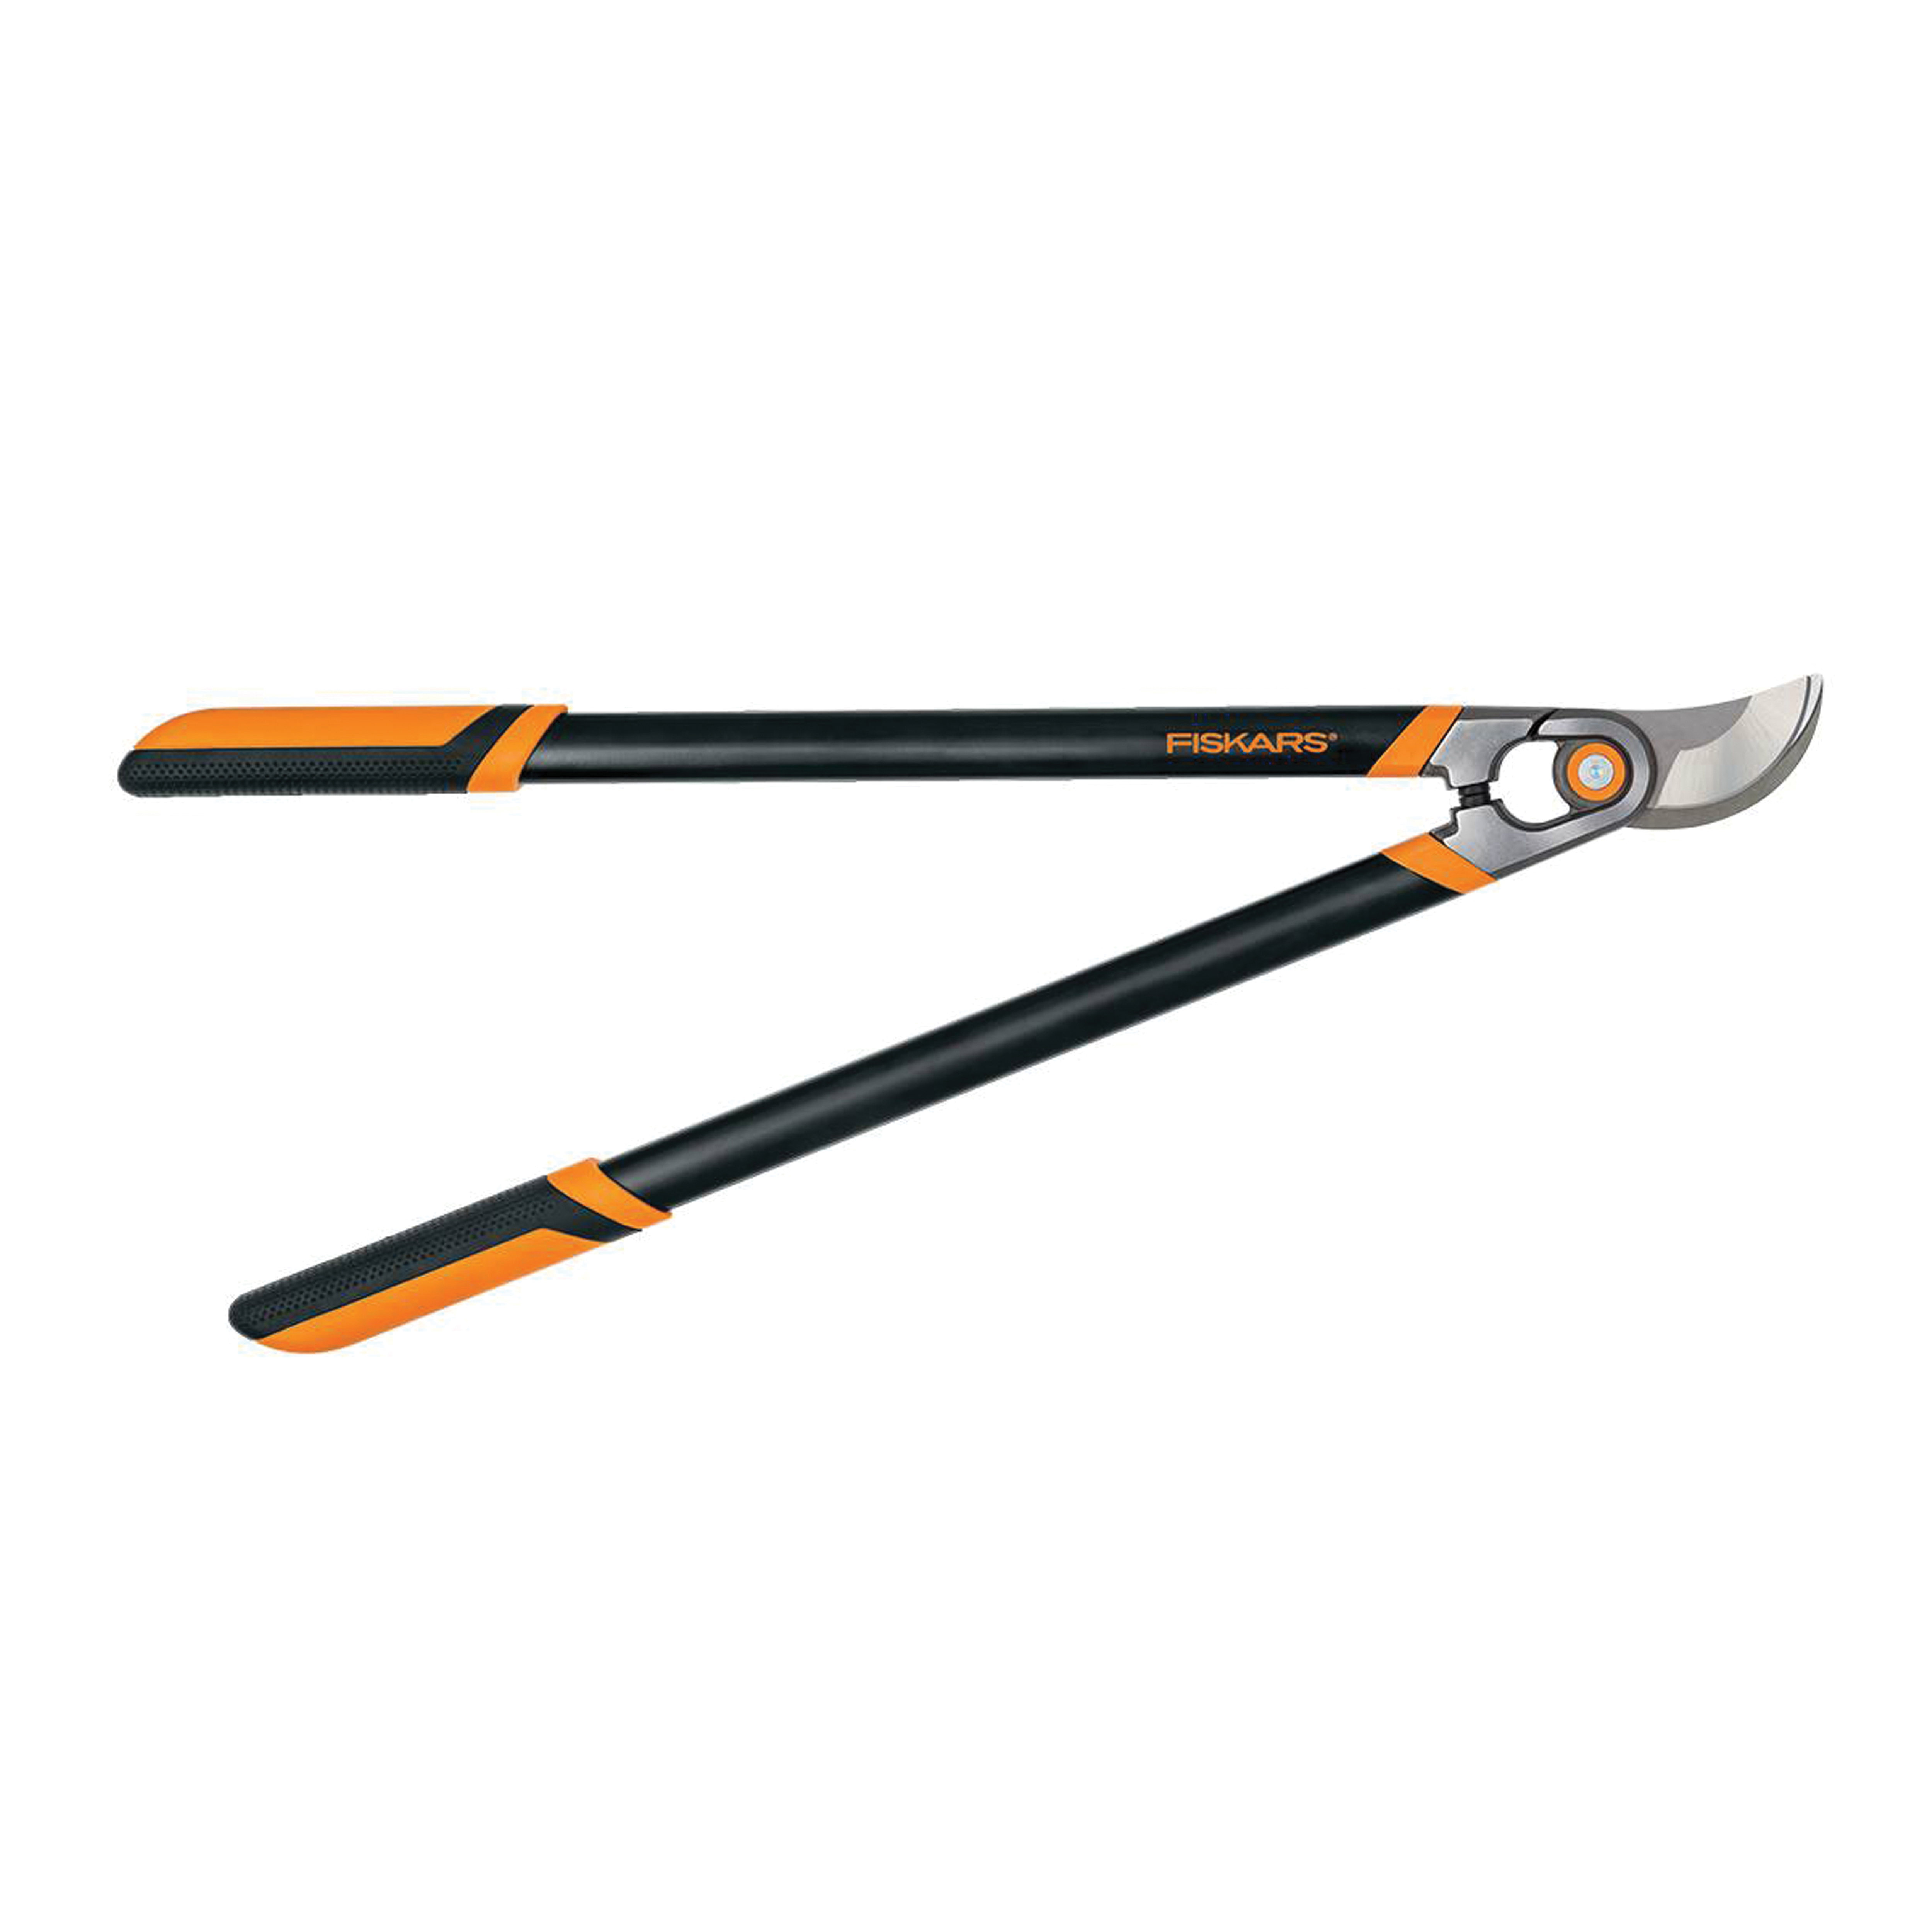 Picture of FISKARS 391561-1001 Forged Lopper with Replaceable Blade, 2 in Cutting Capacity, Bypass Blade, Steel Blade